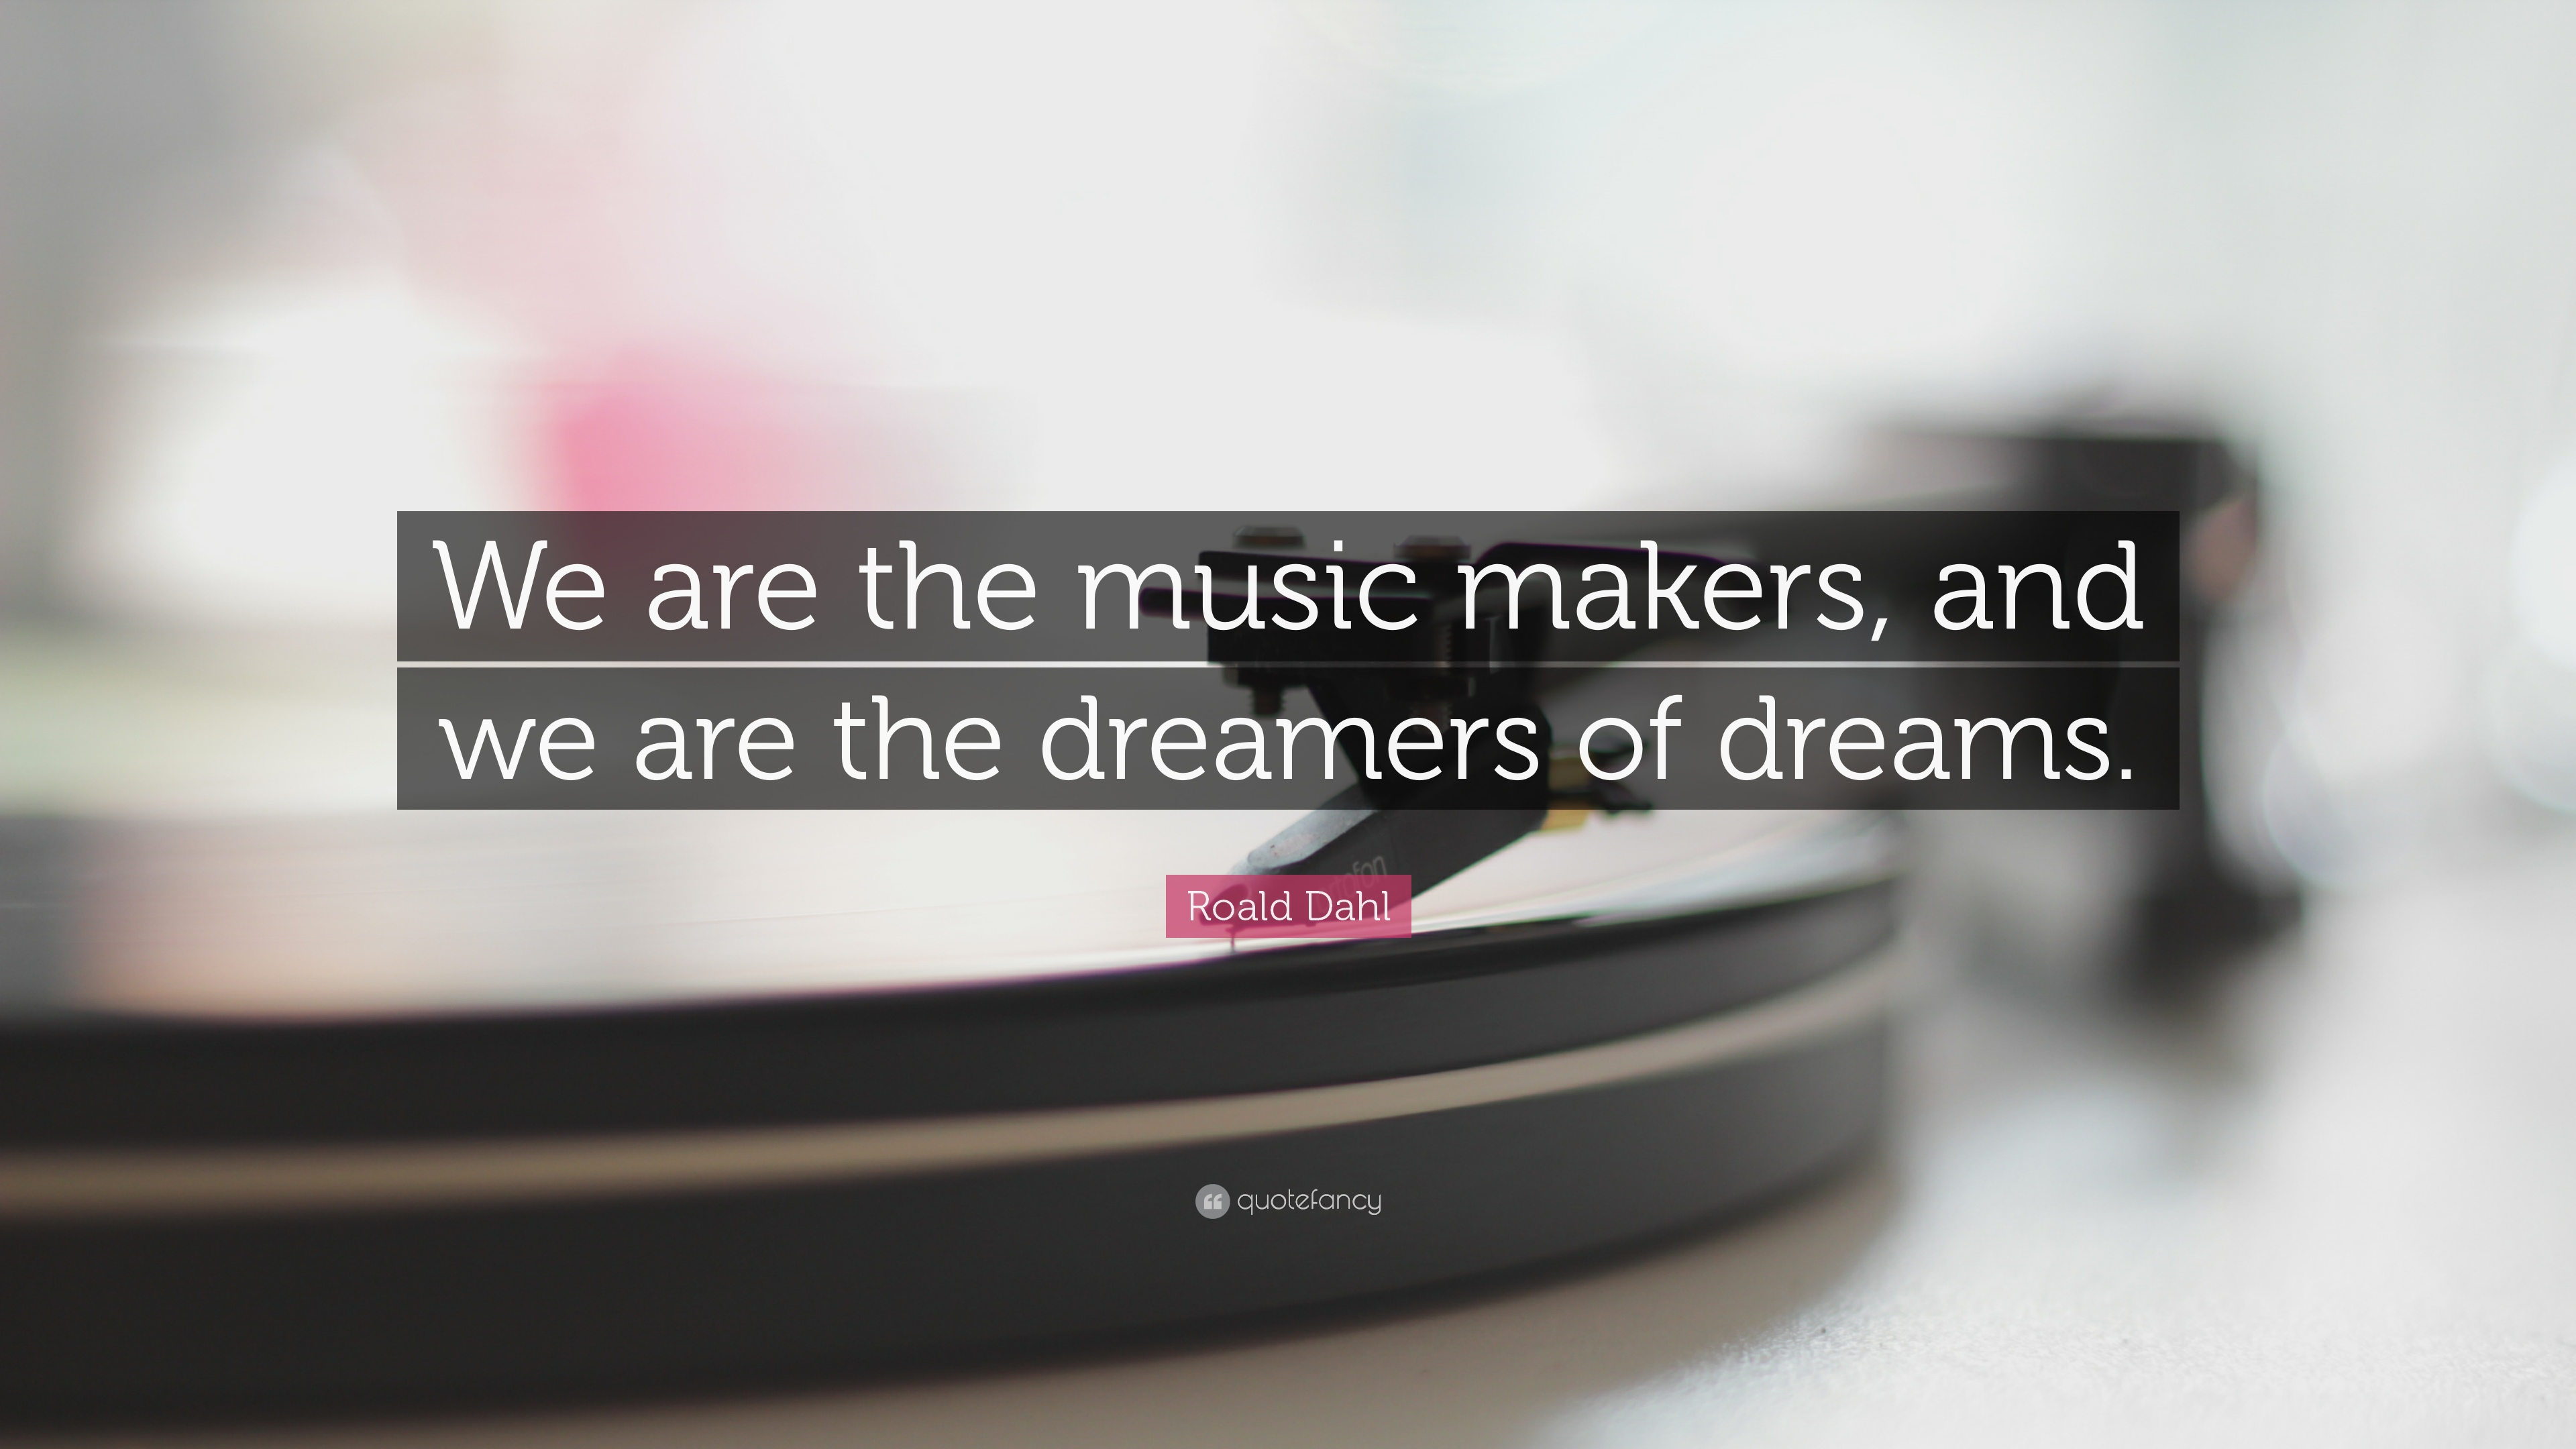 Roald Dahl Quotes Wallpaper Roald Dahl Quote We Are The Music Makers And We Are The